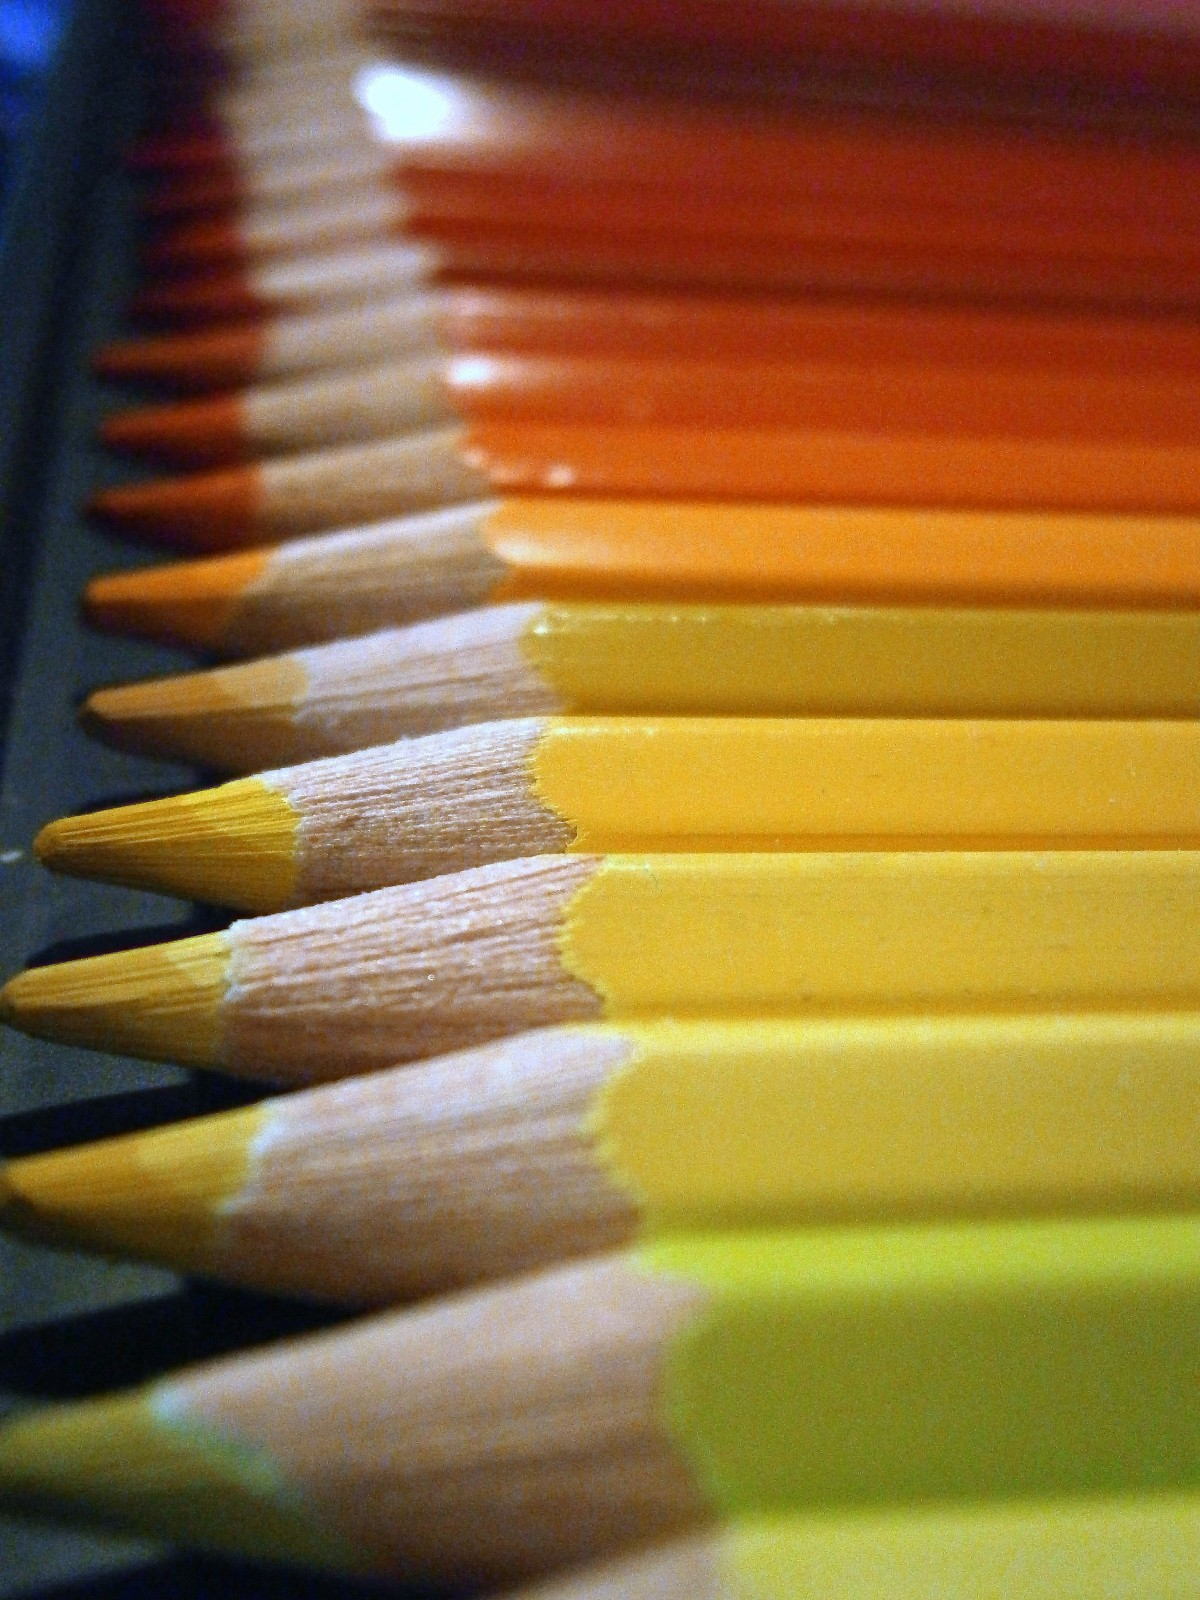 Free Images  work pencil line color yellow close up